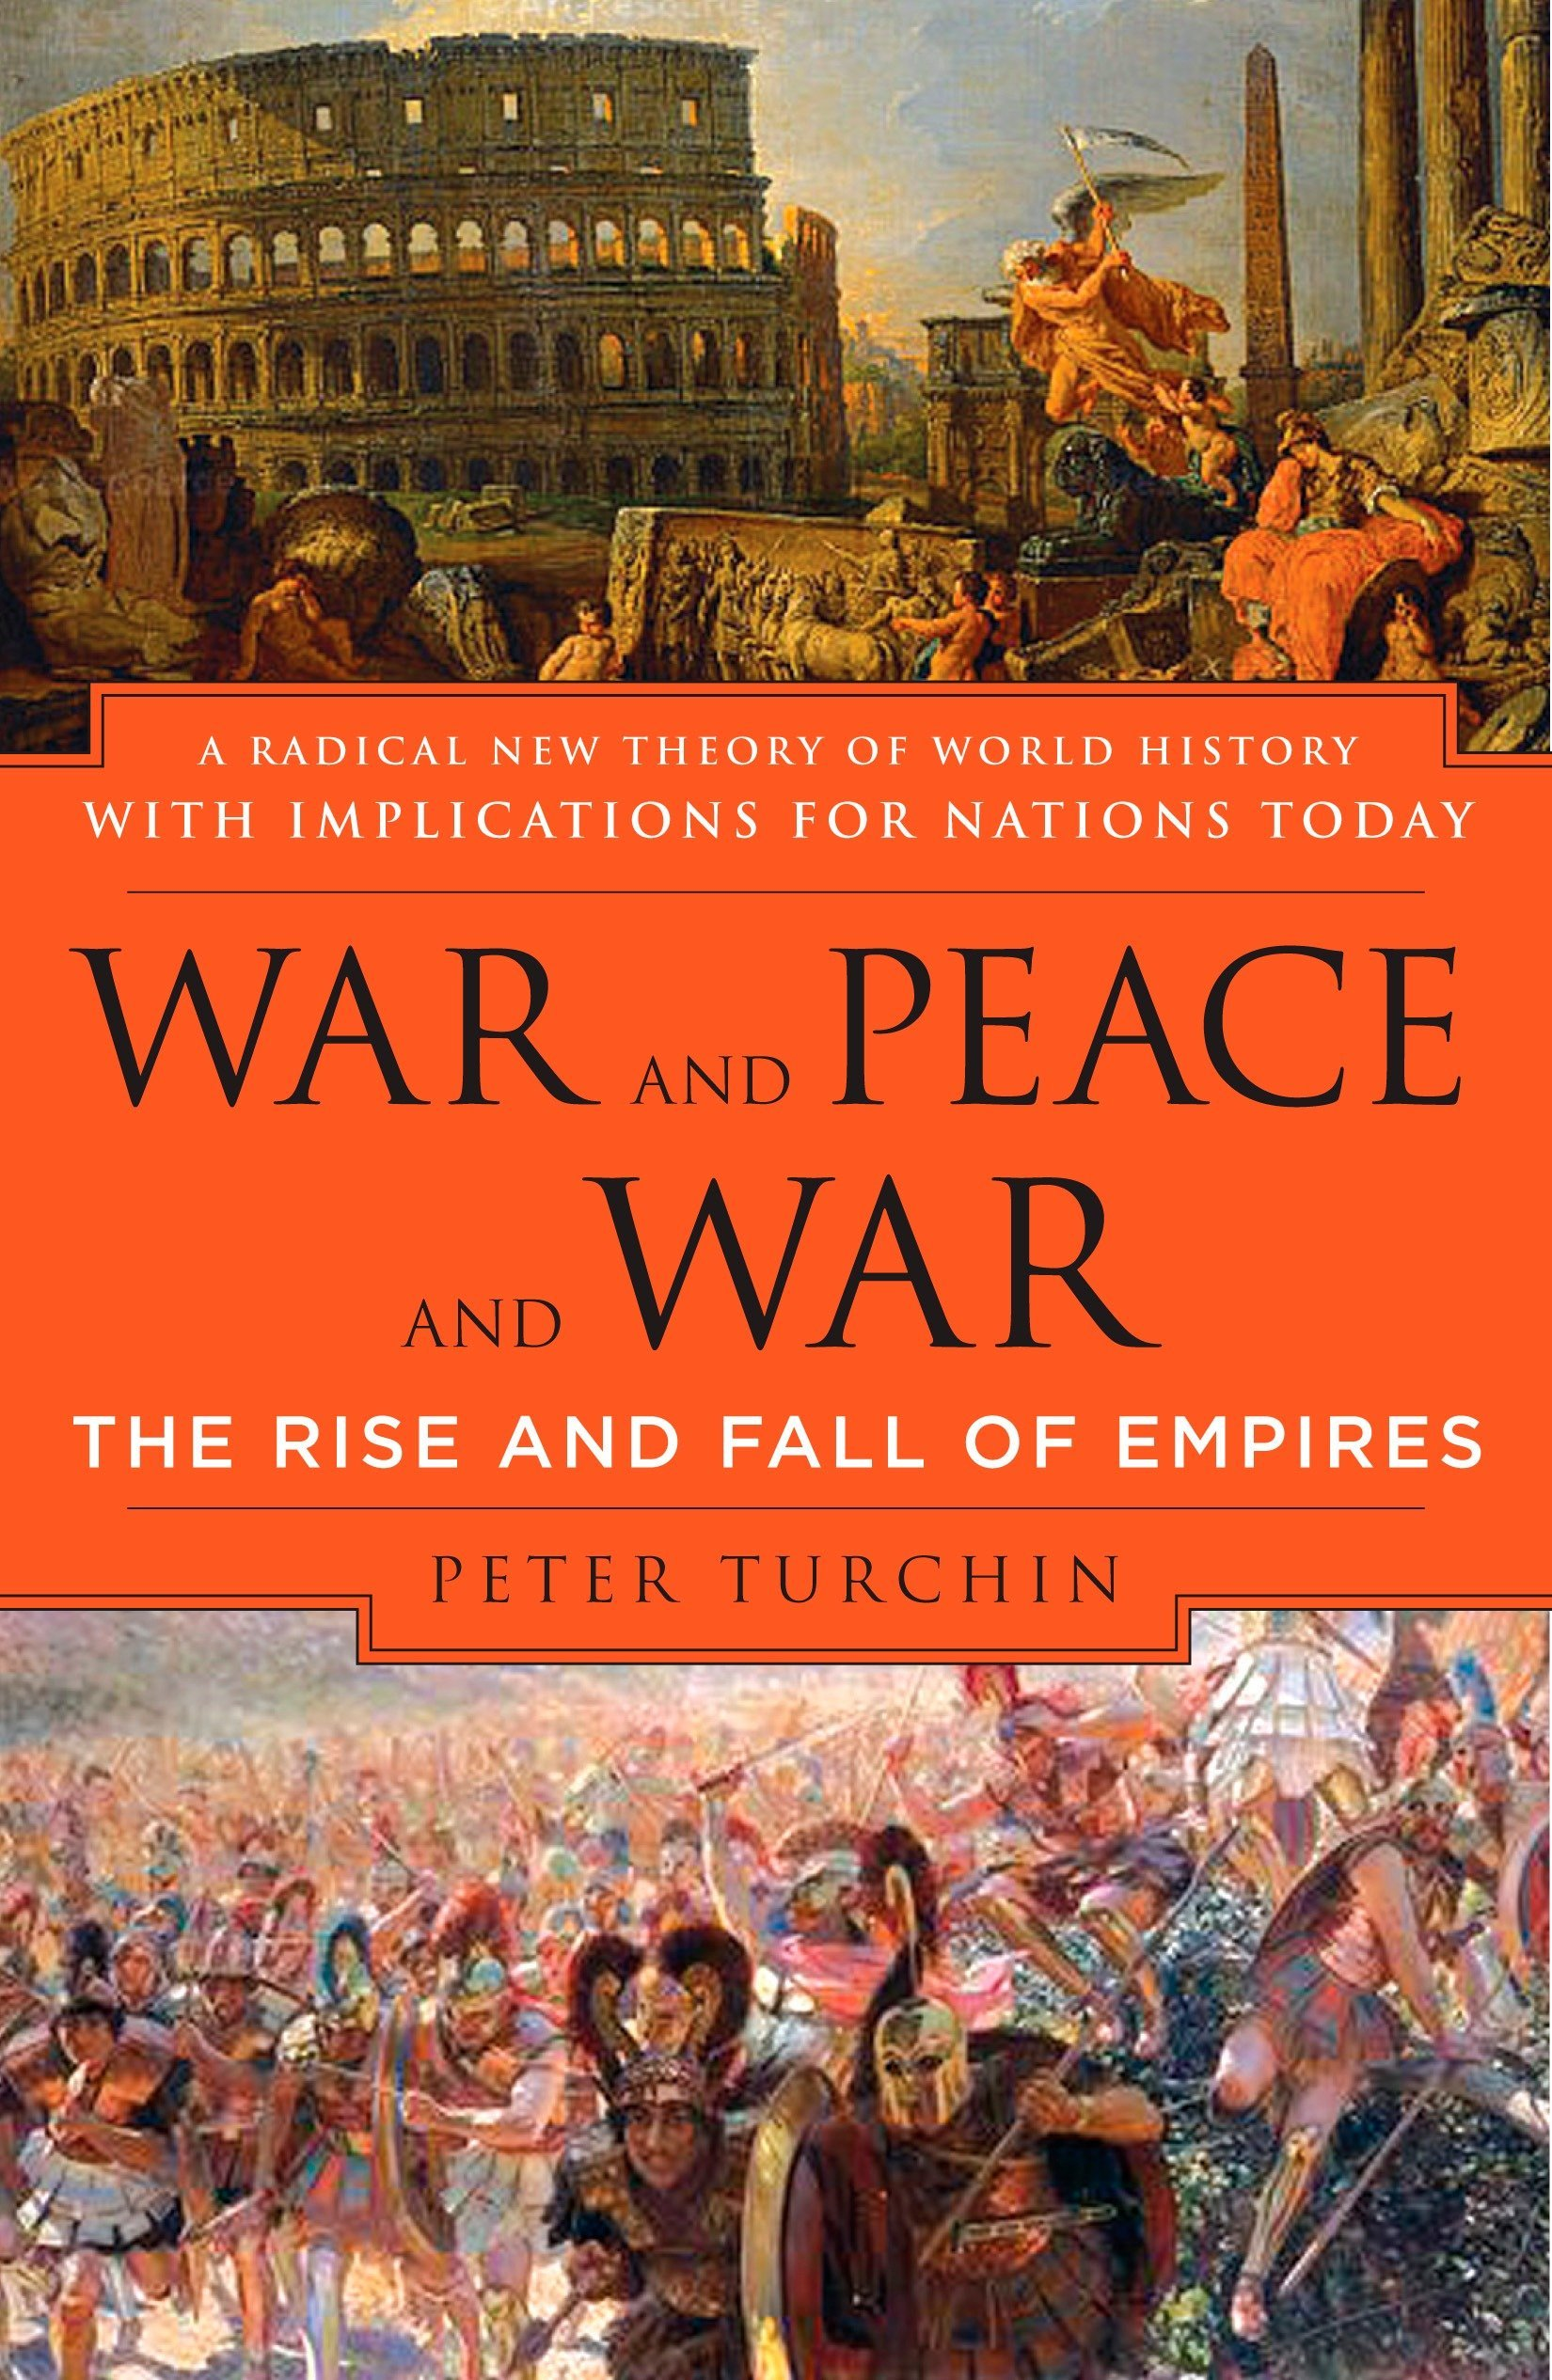 amazon war and peace and war the rise and fall of empires peter